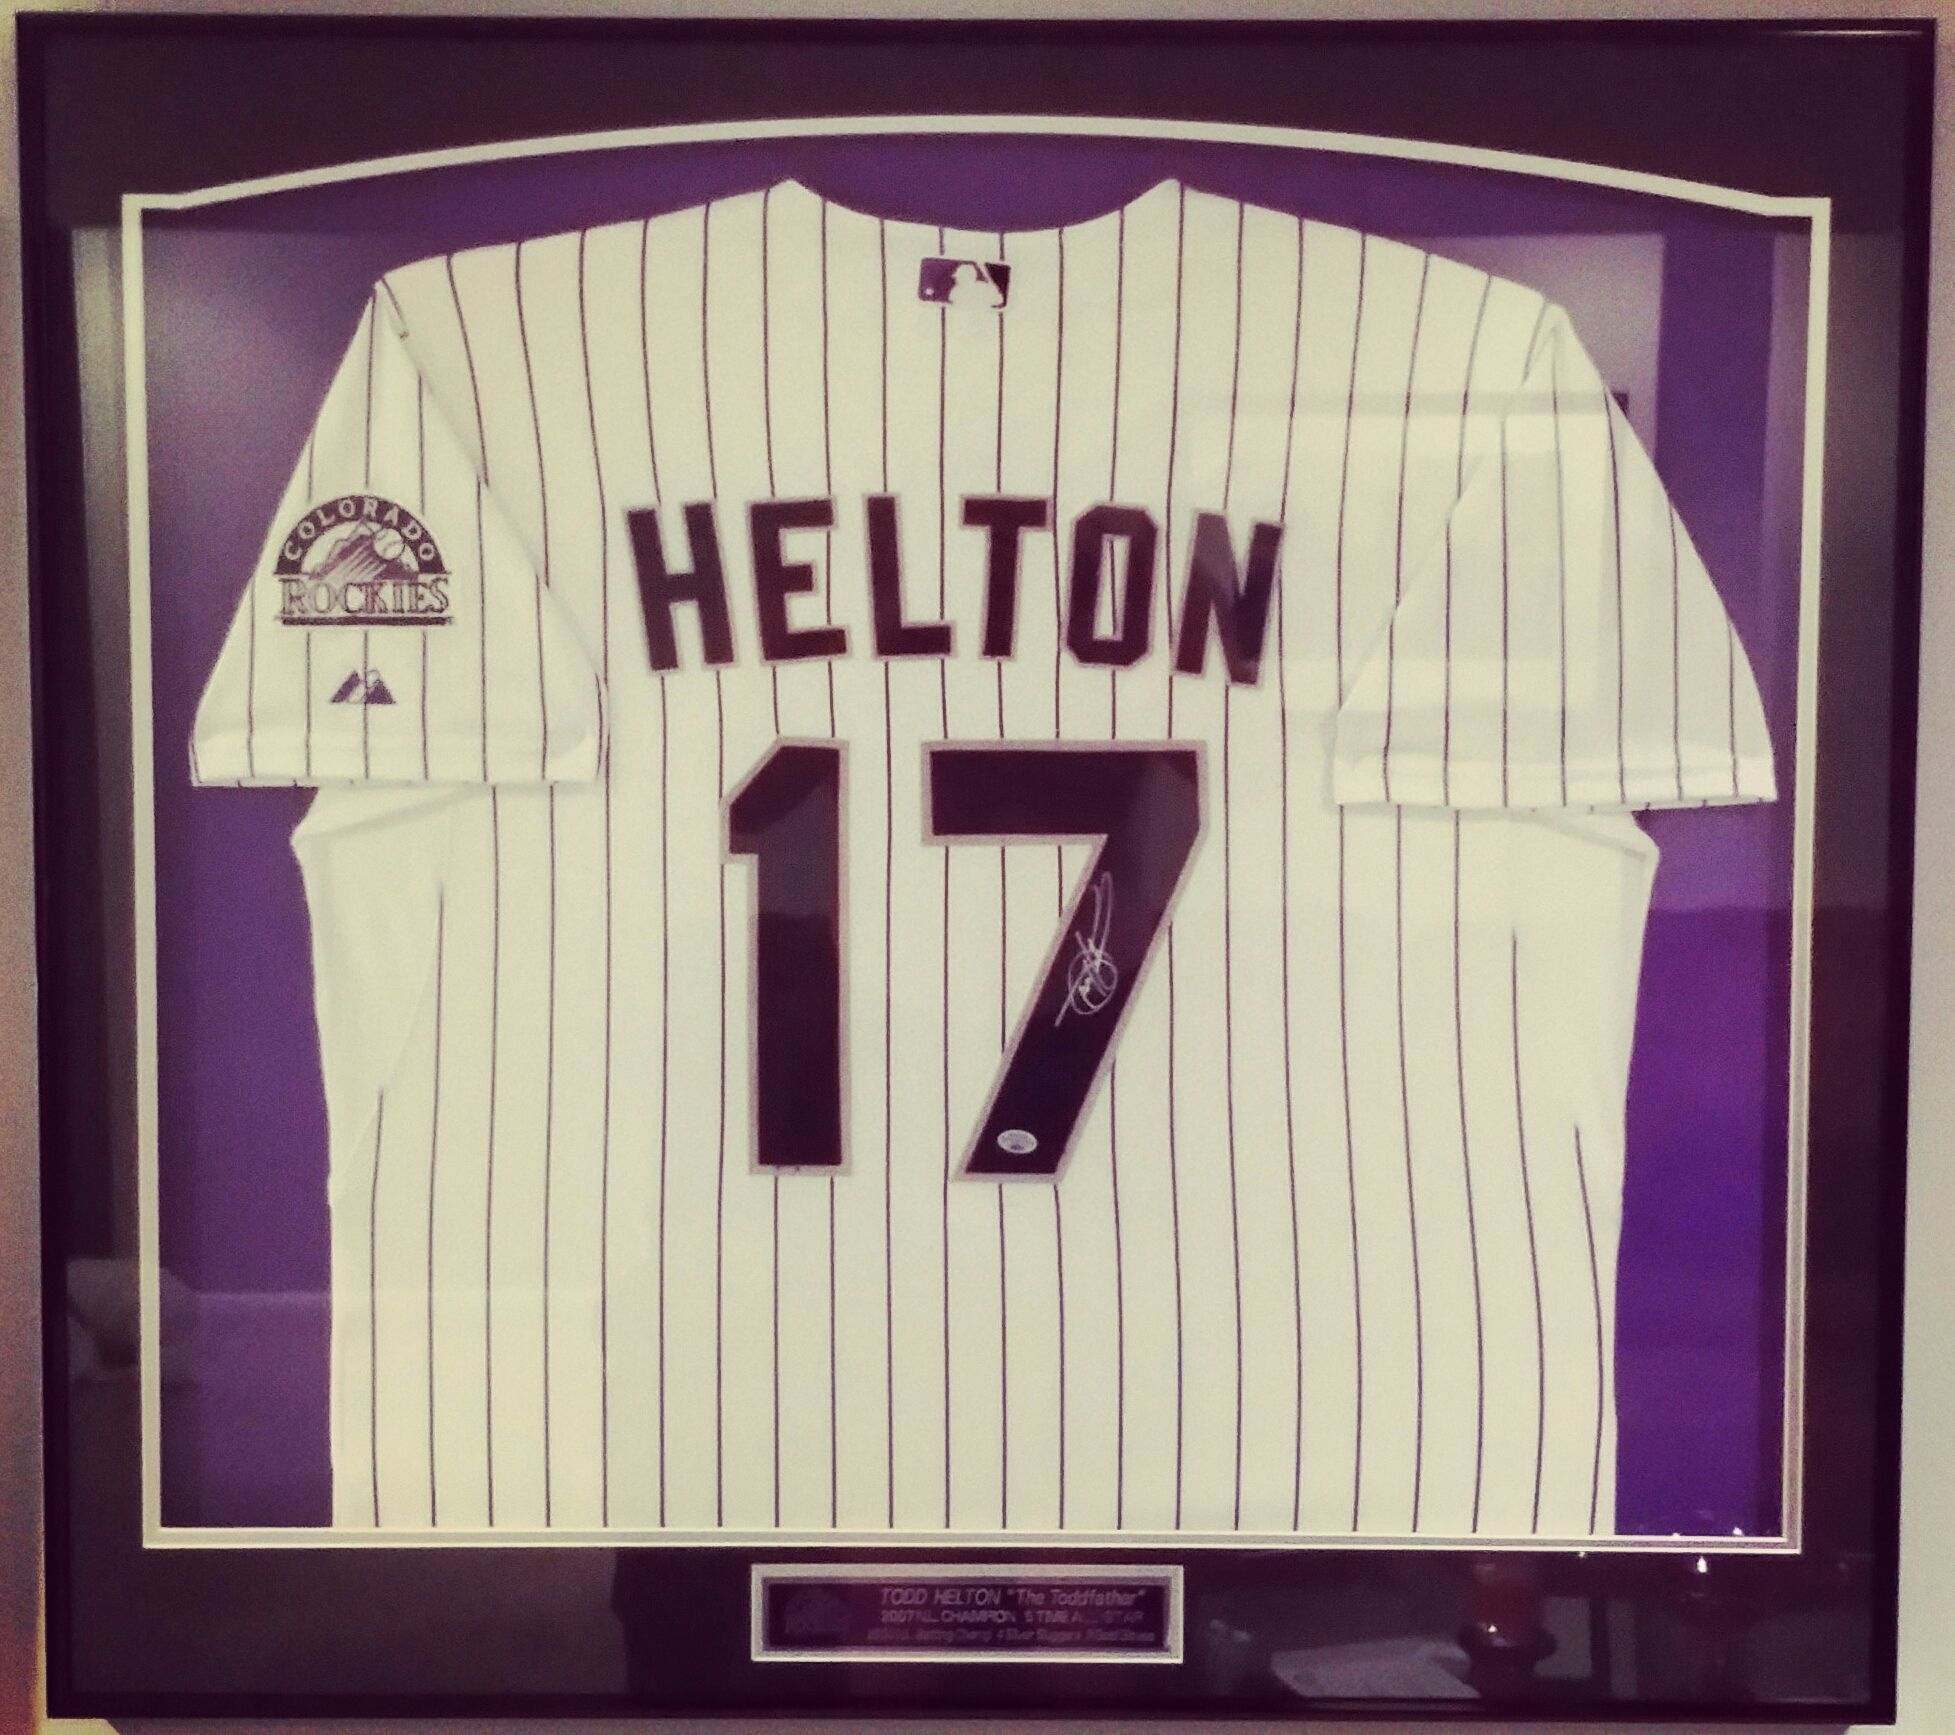 Though football season has begun, we frame baseball jerseys all year ...